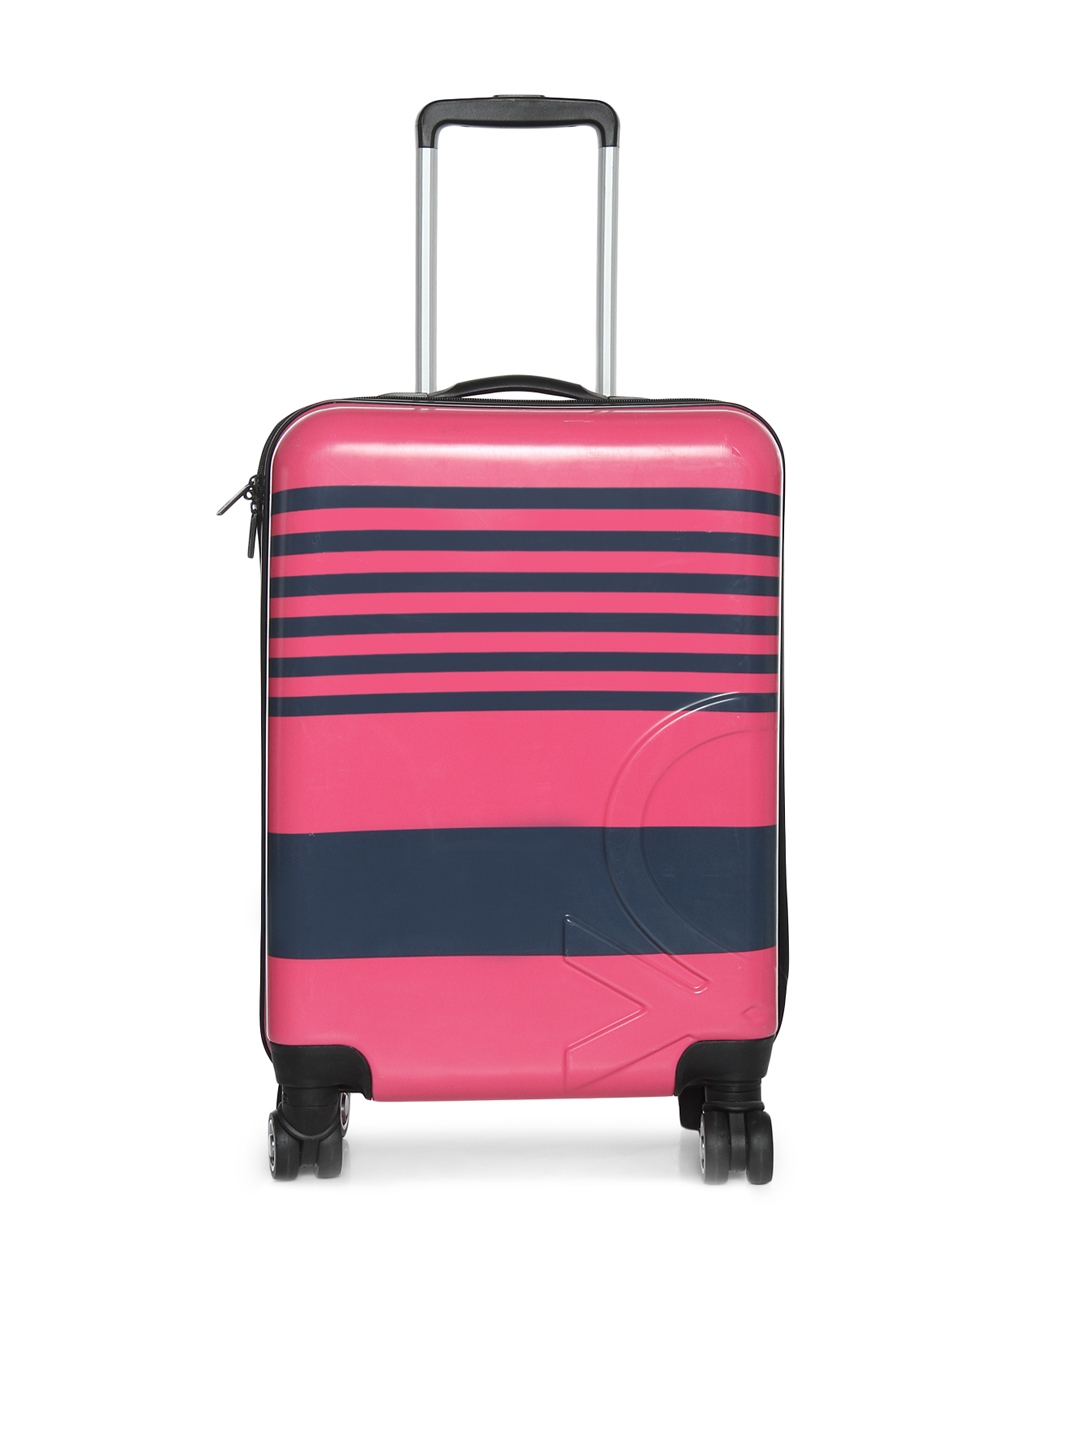 c4737b02ff Buy United Colors Of Benetton Unisex Pink   Blue Cabin Trolley ...